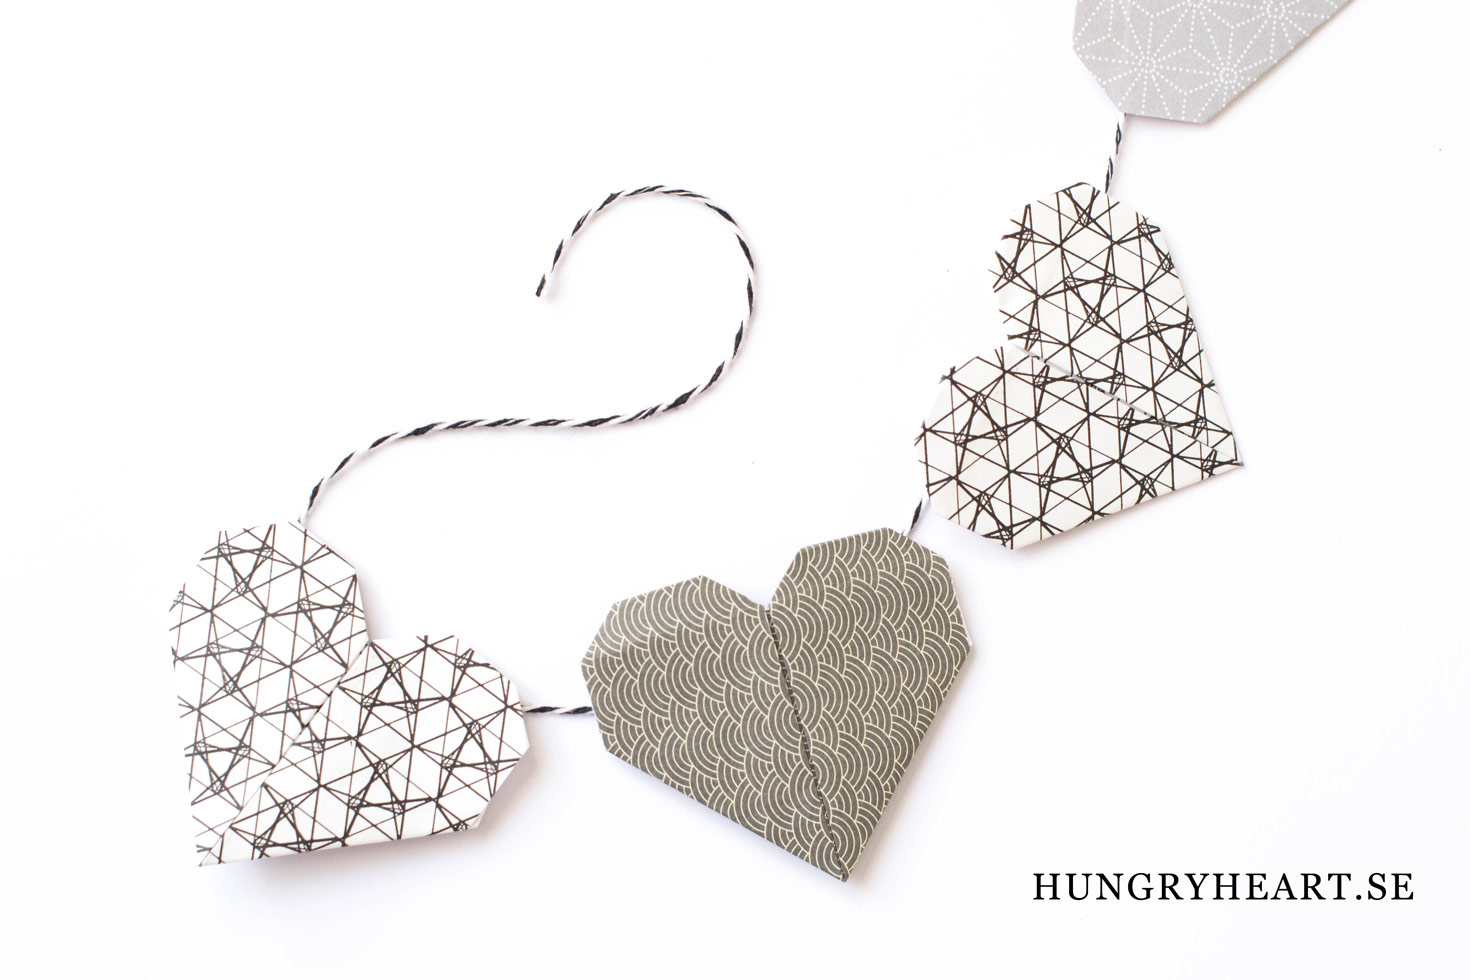 DIY Girlang med hjärtan | Hungry Heart